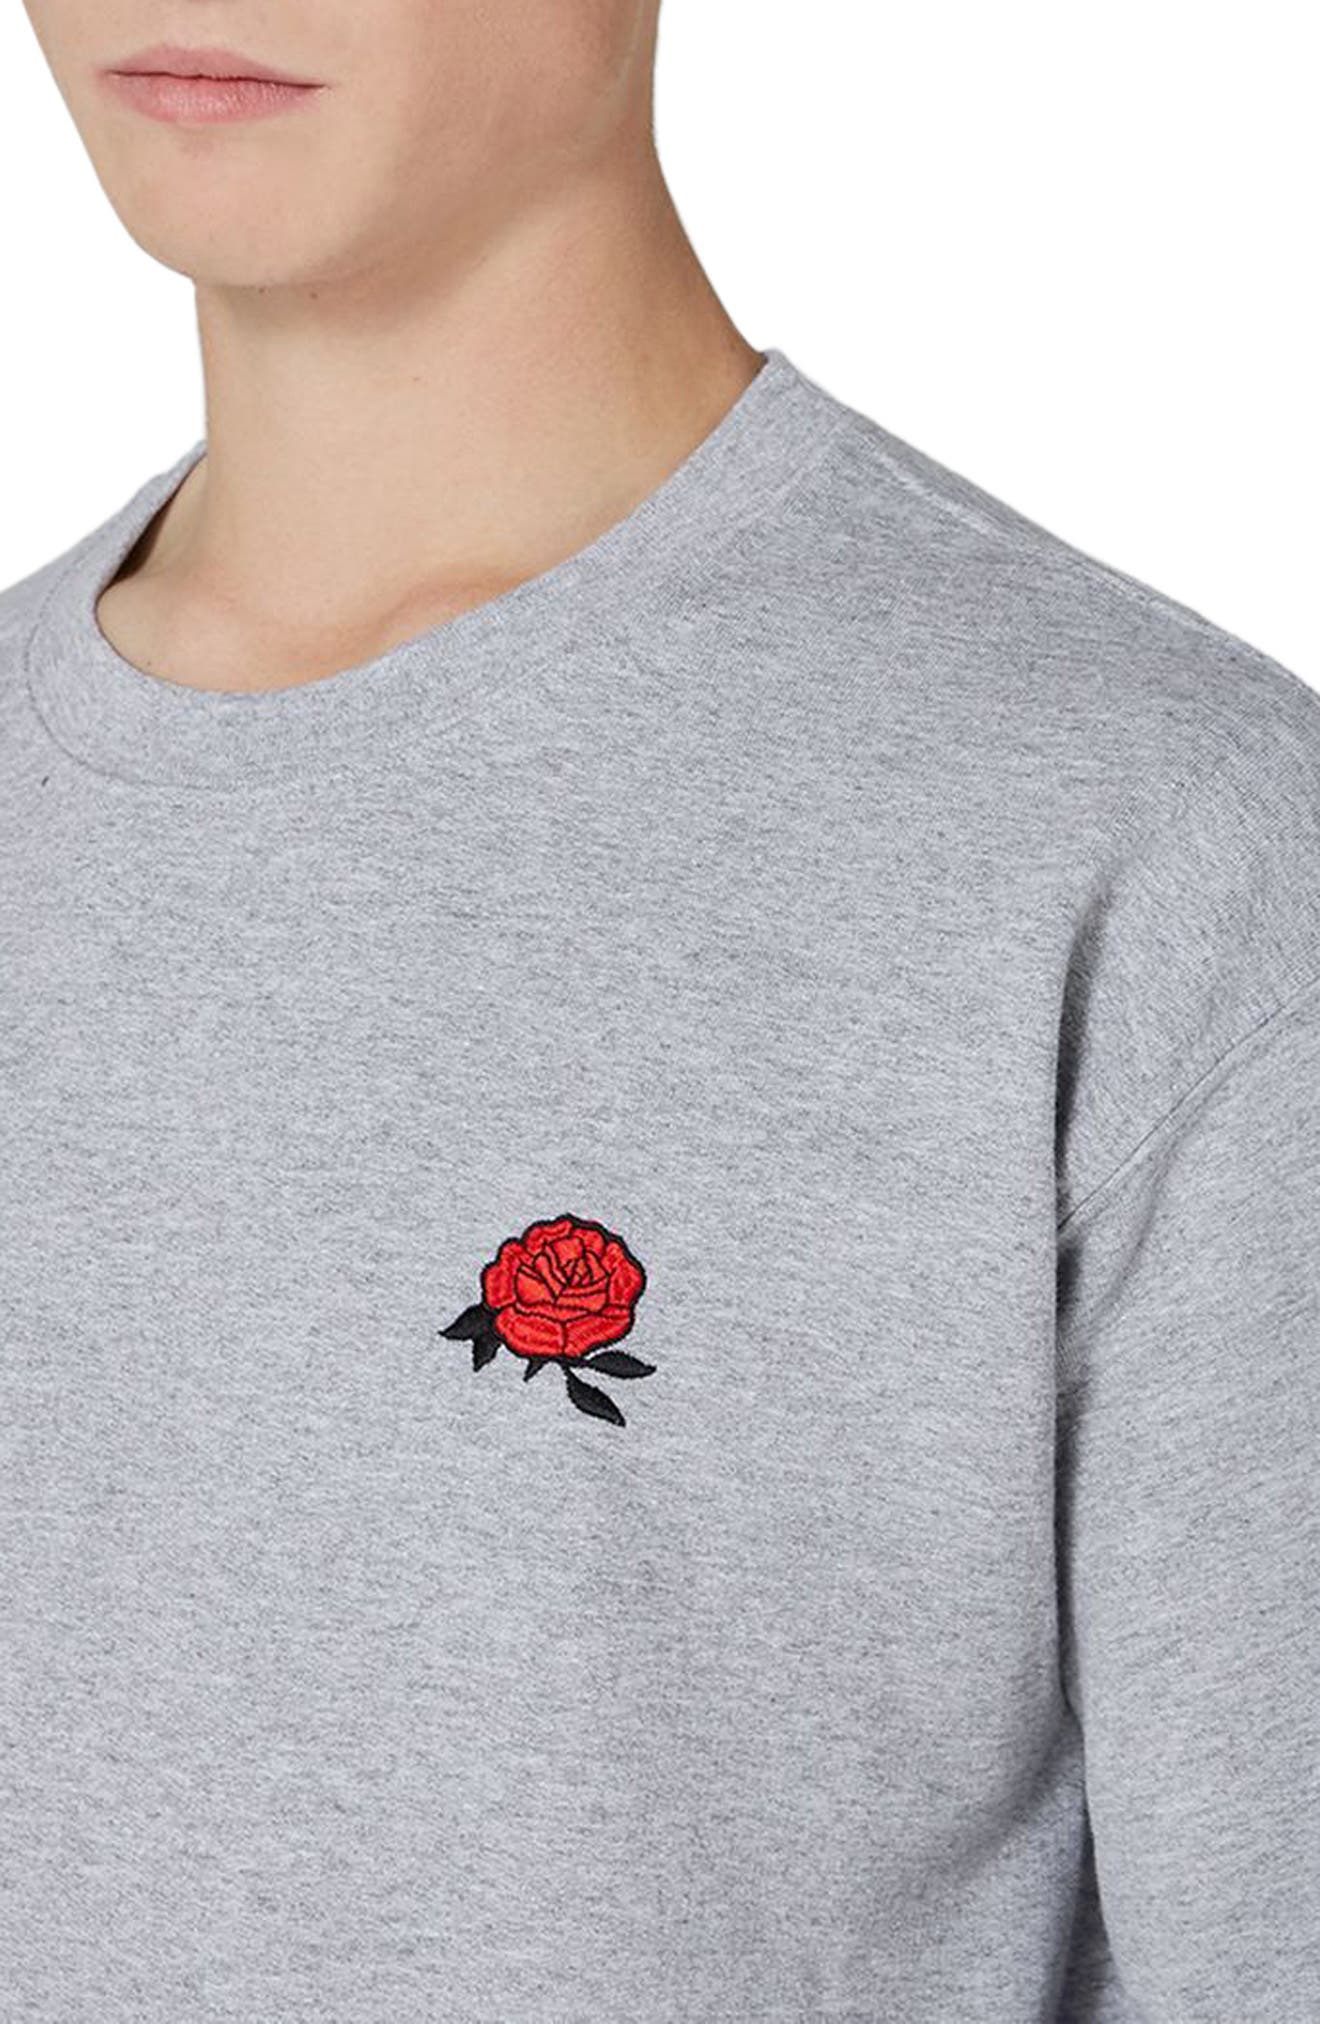 Rose Embroidered Sweatshirt,                             Alternate thumbnail 3, color,                             Light Grey